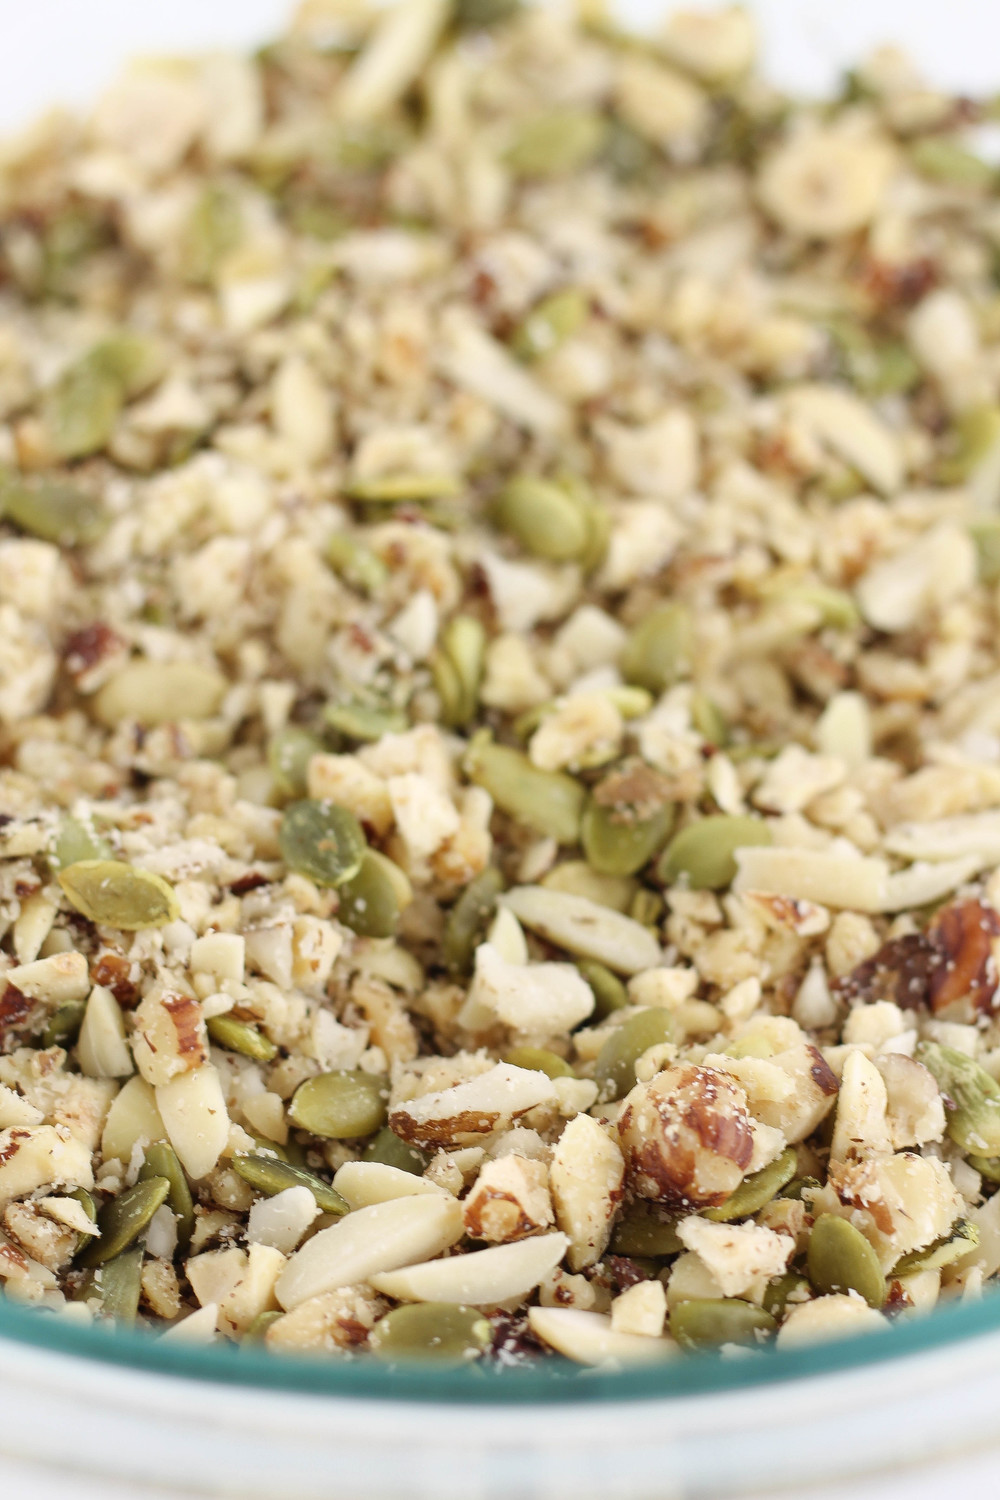 Quick, Oven Baked, Granola, Whole30, Primal, Real Food Recipes, No additives, No Added Sugar,